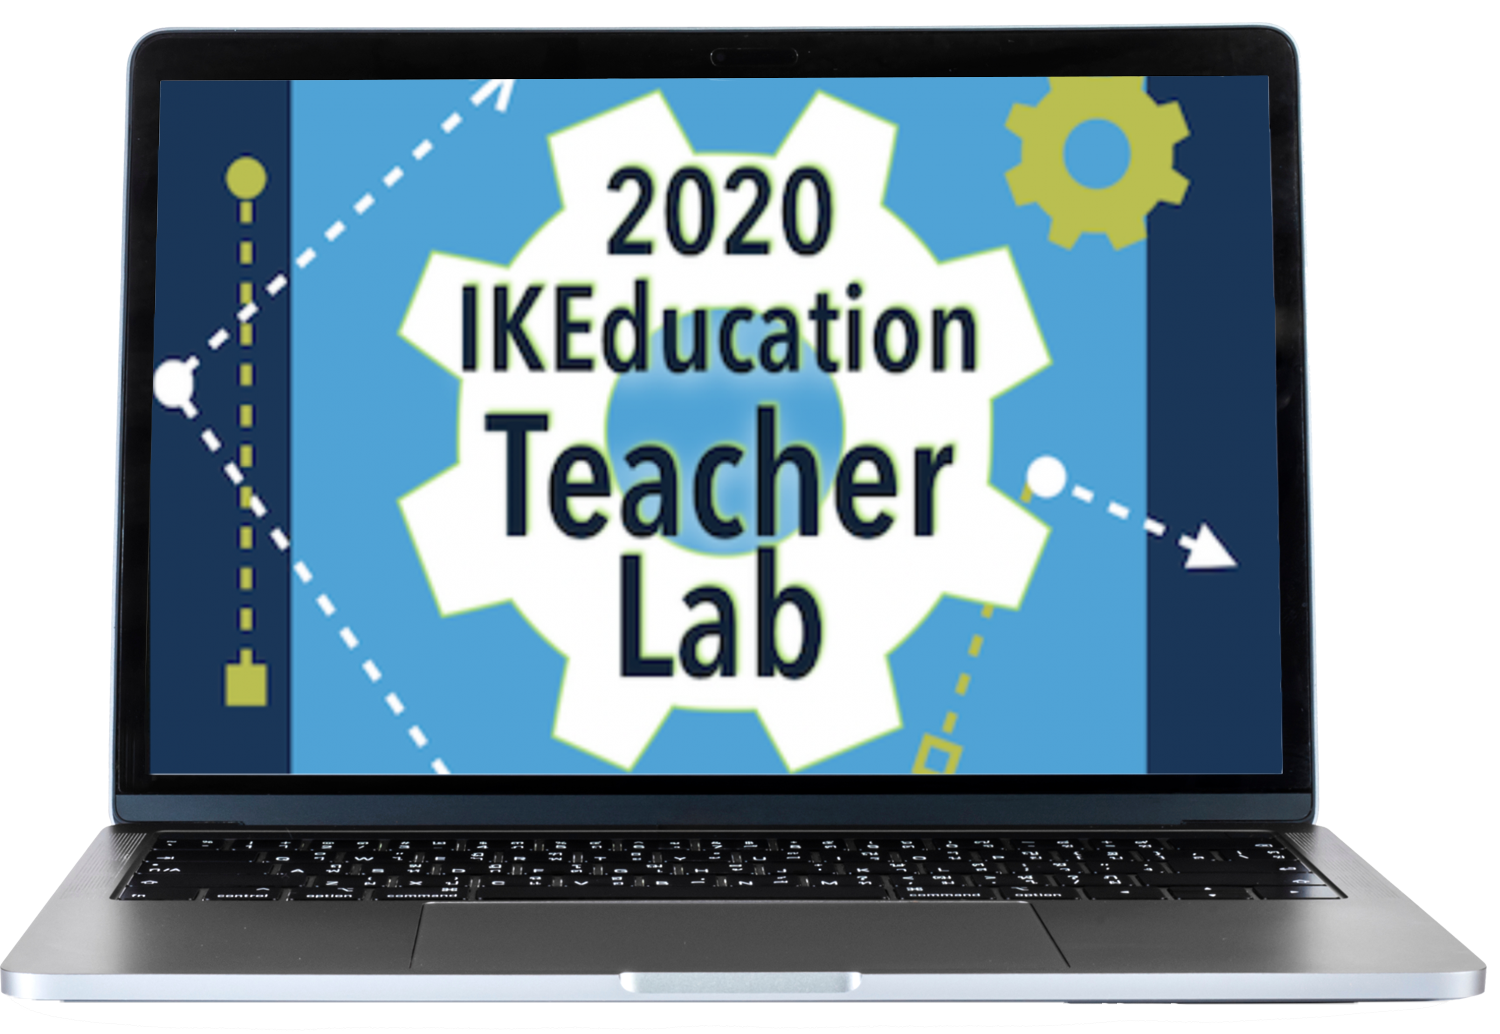 2020 Teacher Lab on Laptop